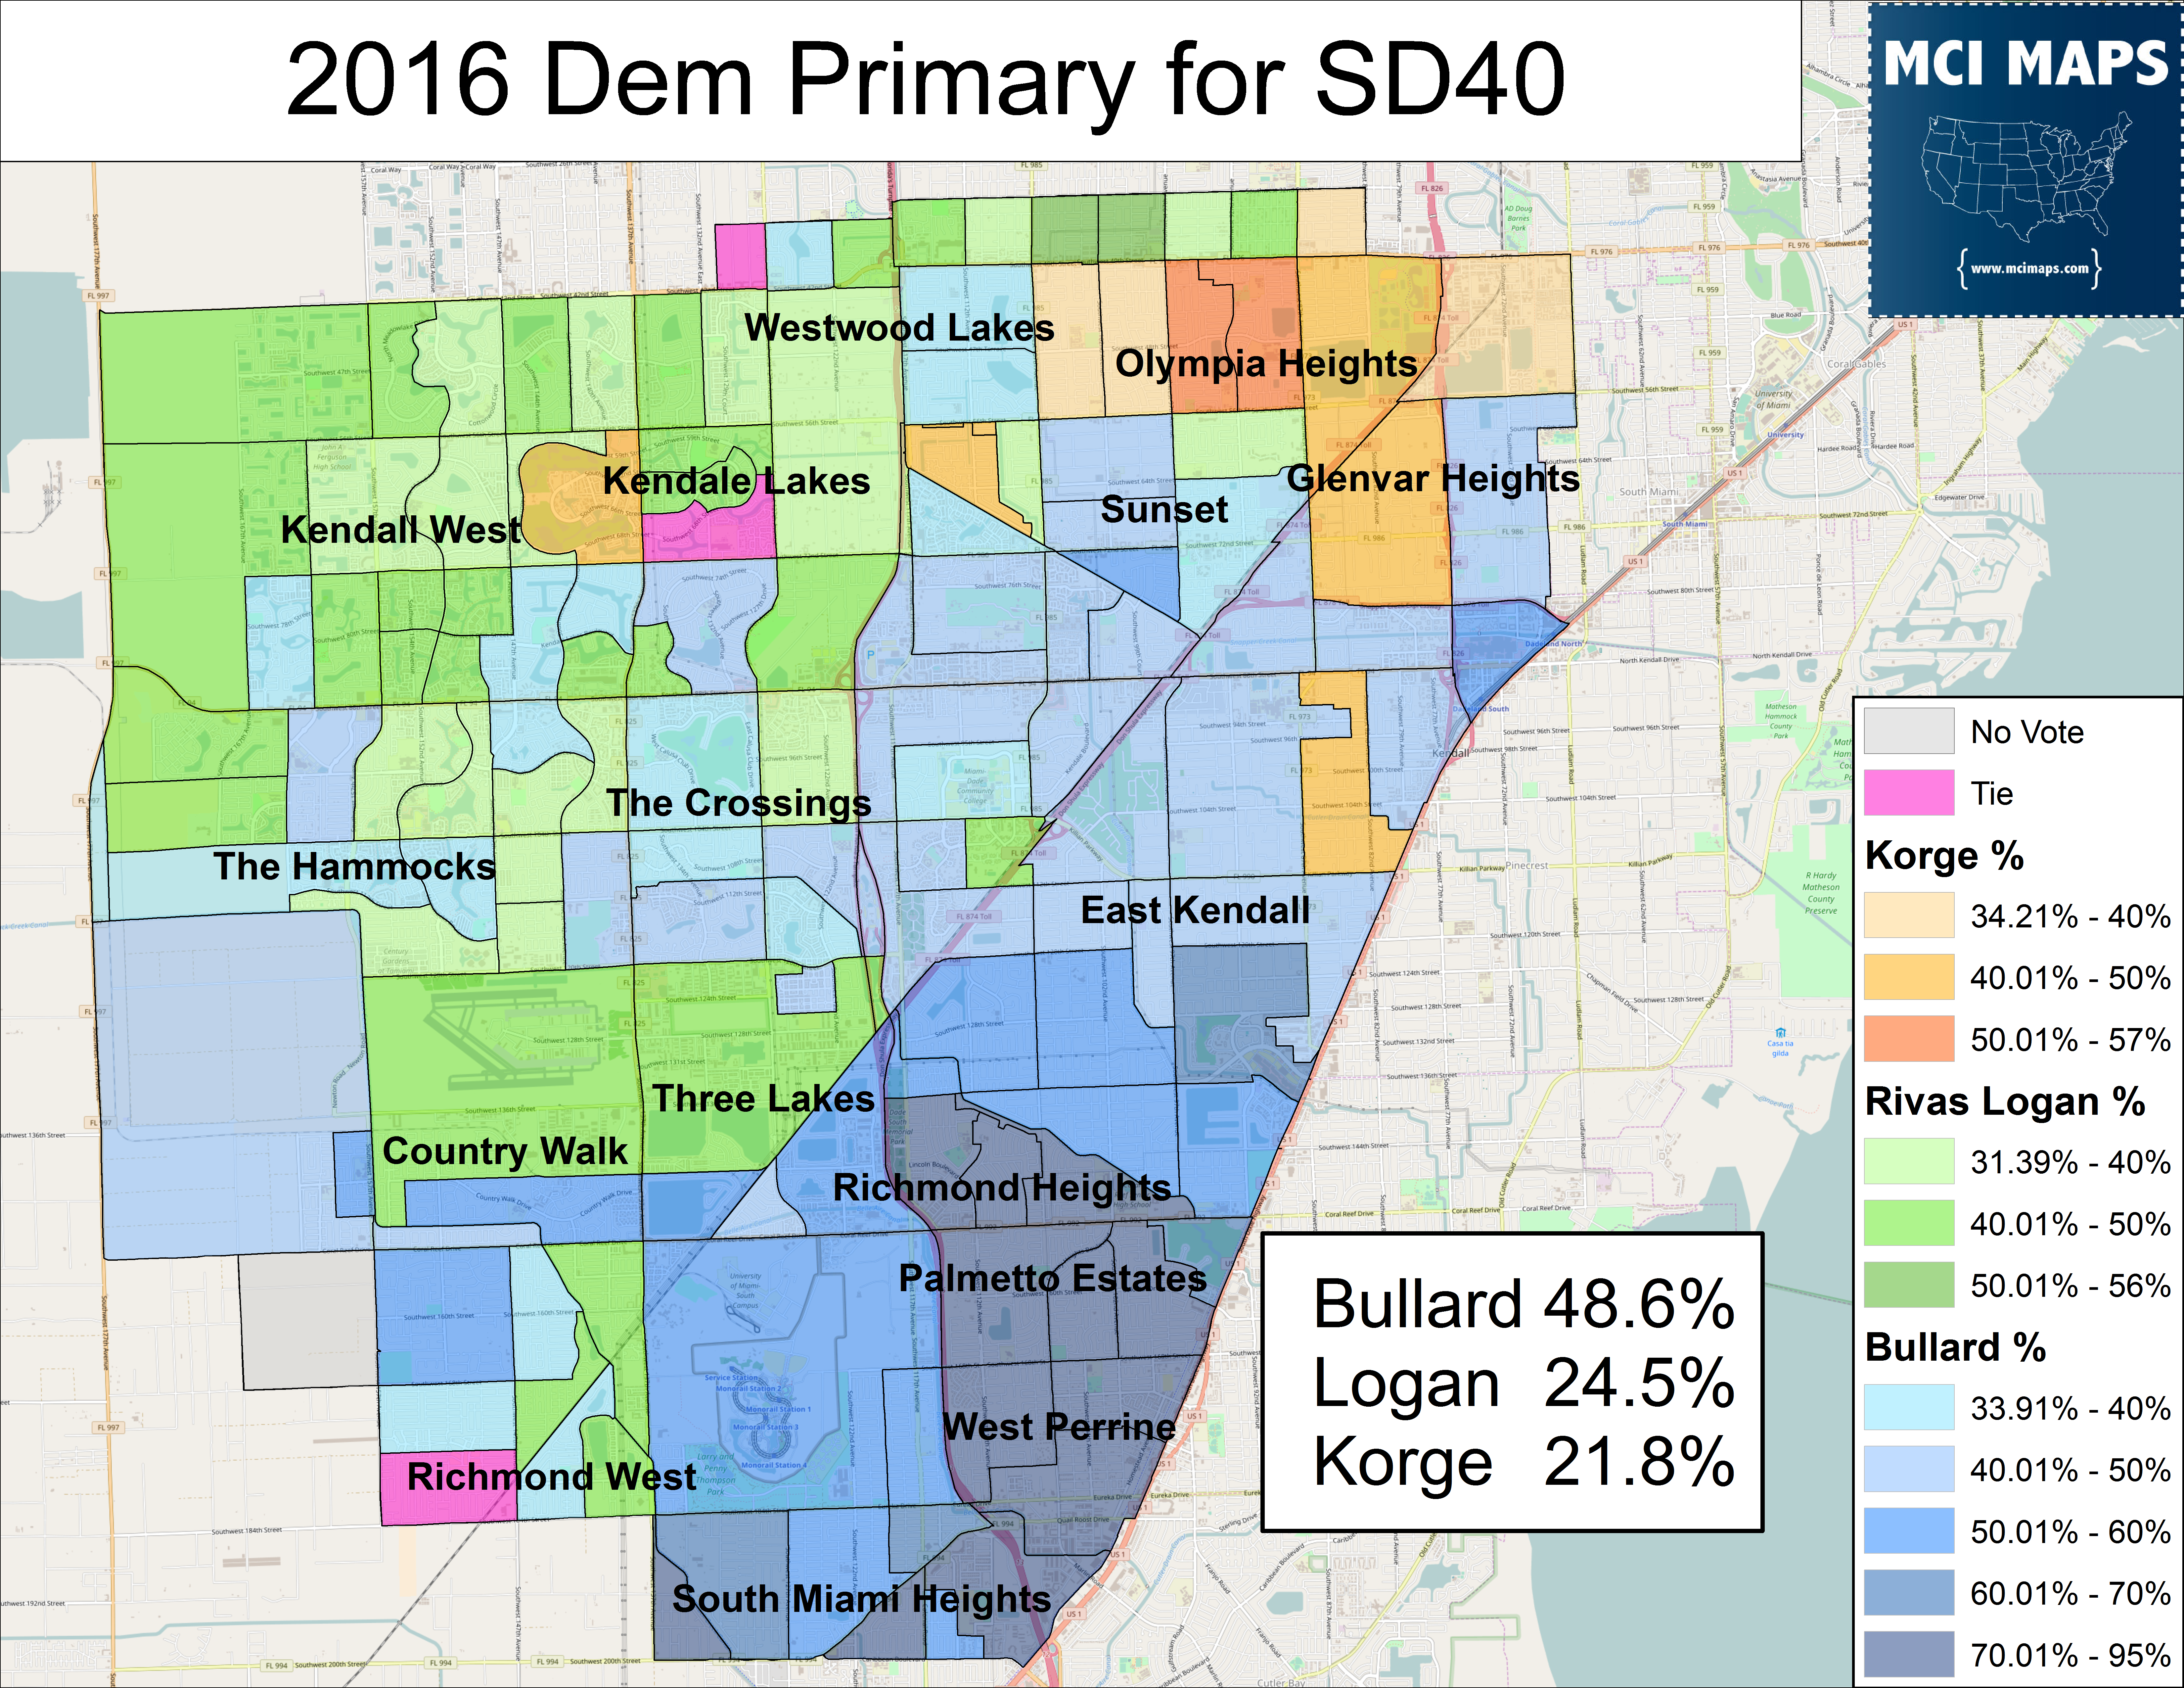 2016 August DEM Dem Primary Result